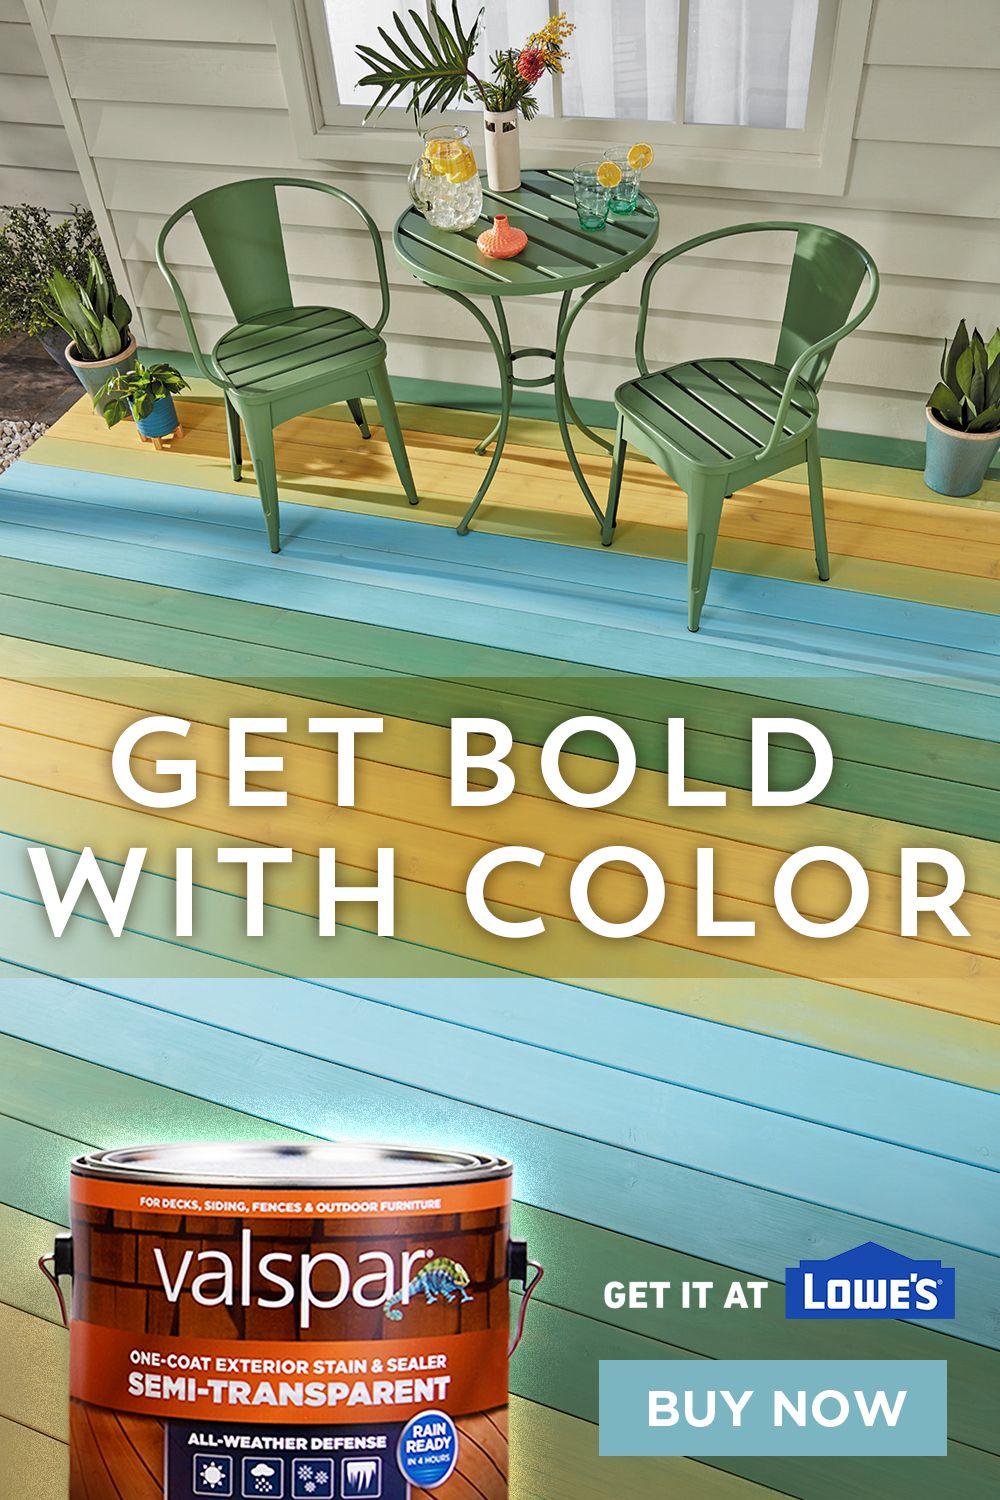 Looking For The Best Exterior Stain Look No Further Than Semi Transparent Valspar Stain It Provides All W Outdoor Wood Stain Exterior Stain Diy Outdoor Decor